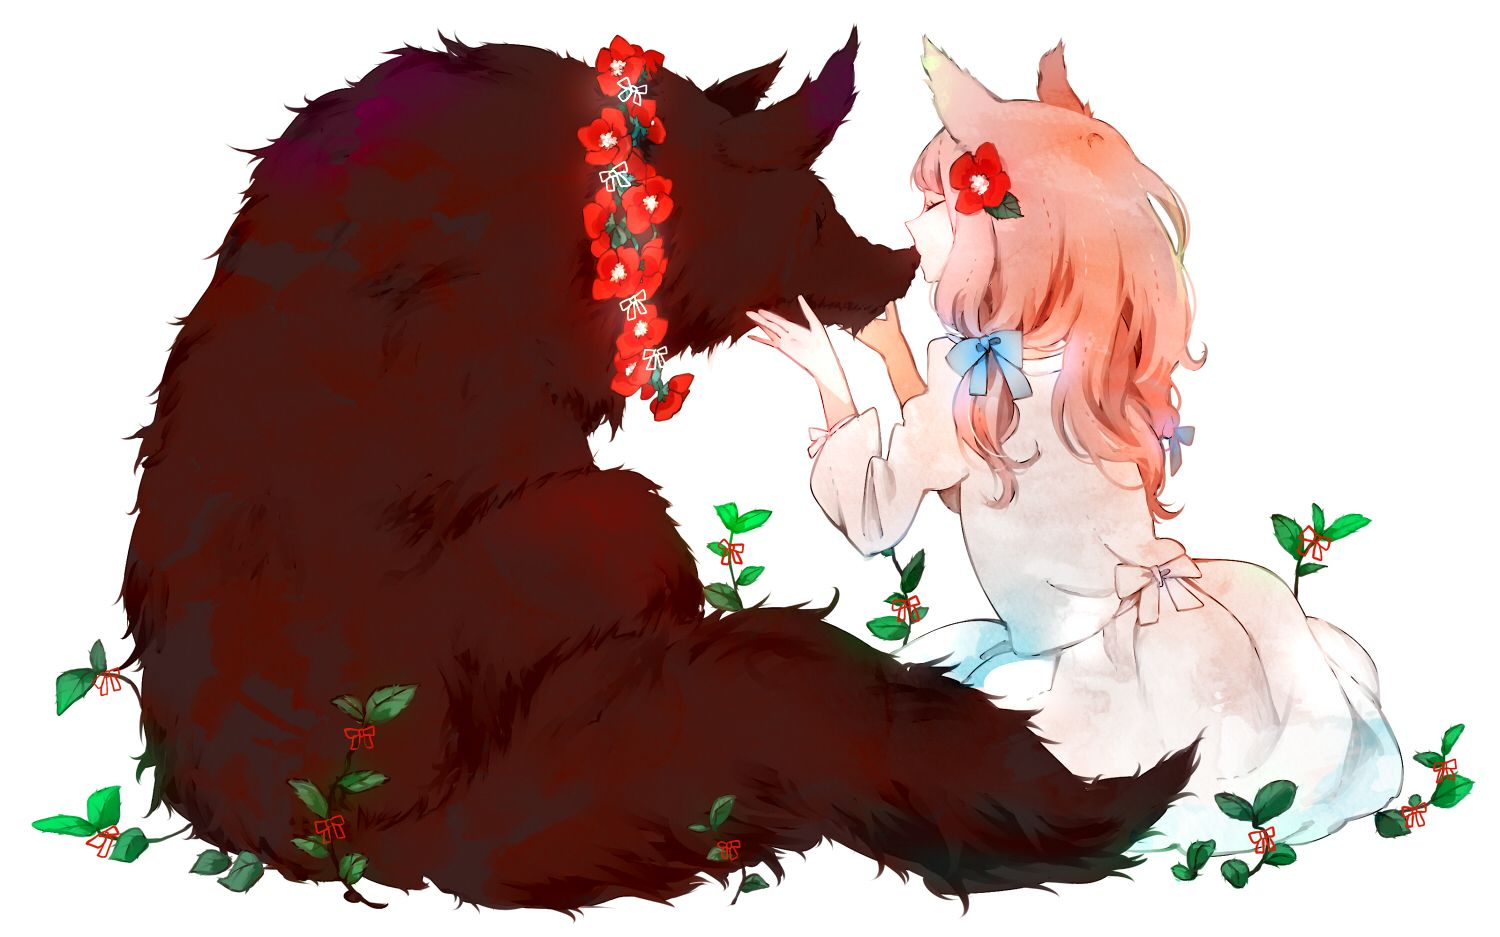 Anime girl with wolf pretty anime style pics pinterest - Wolf girl anime pictures ...